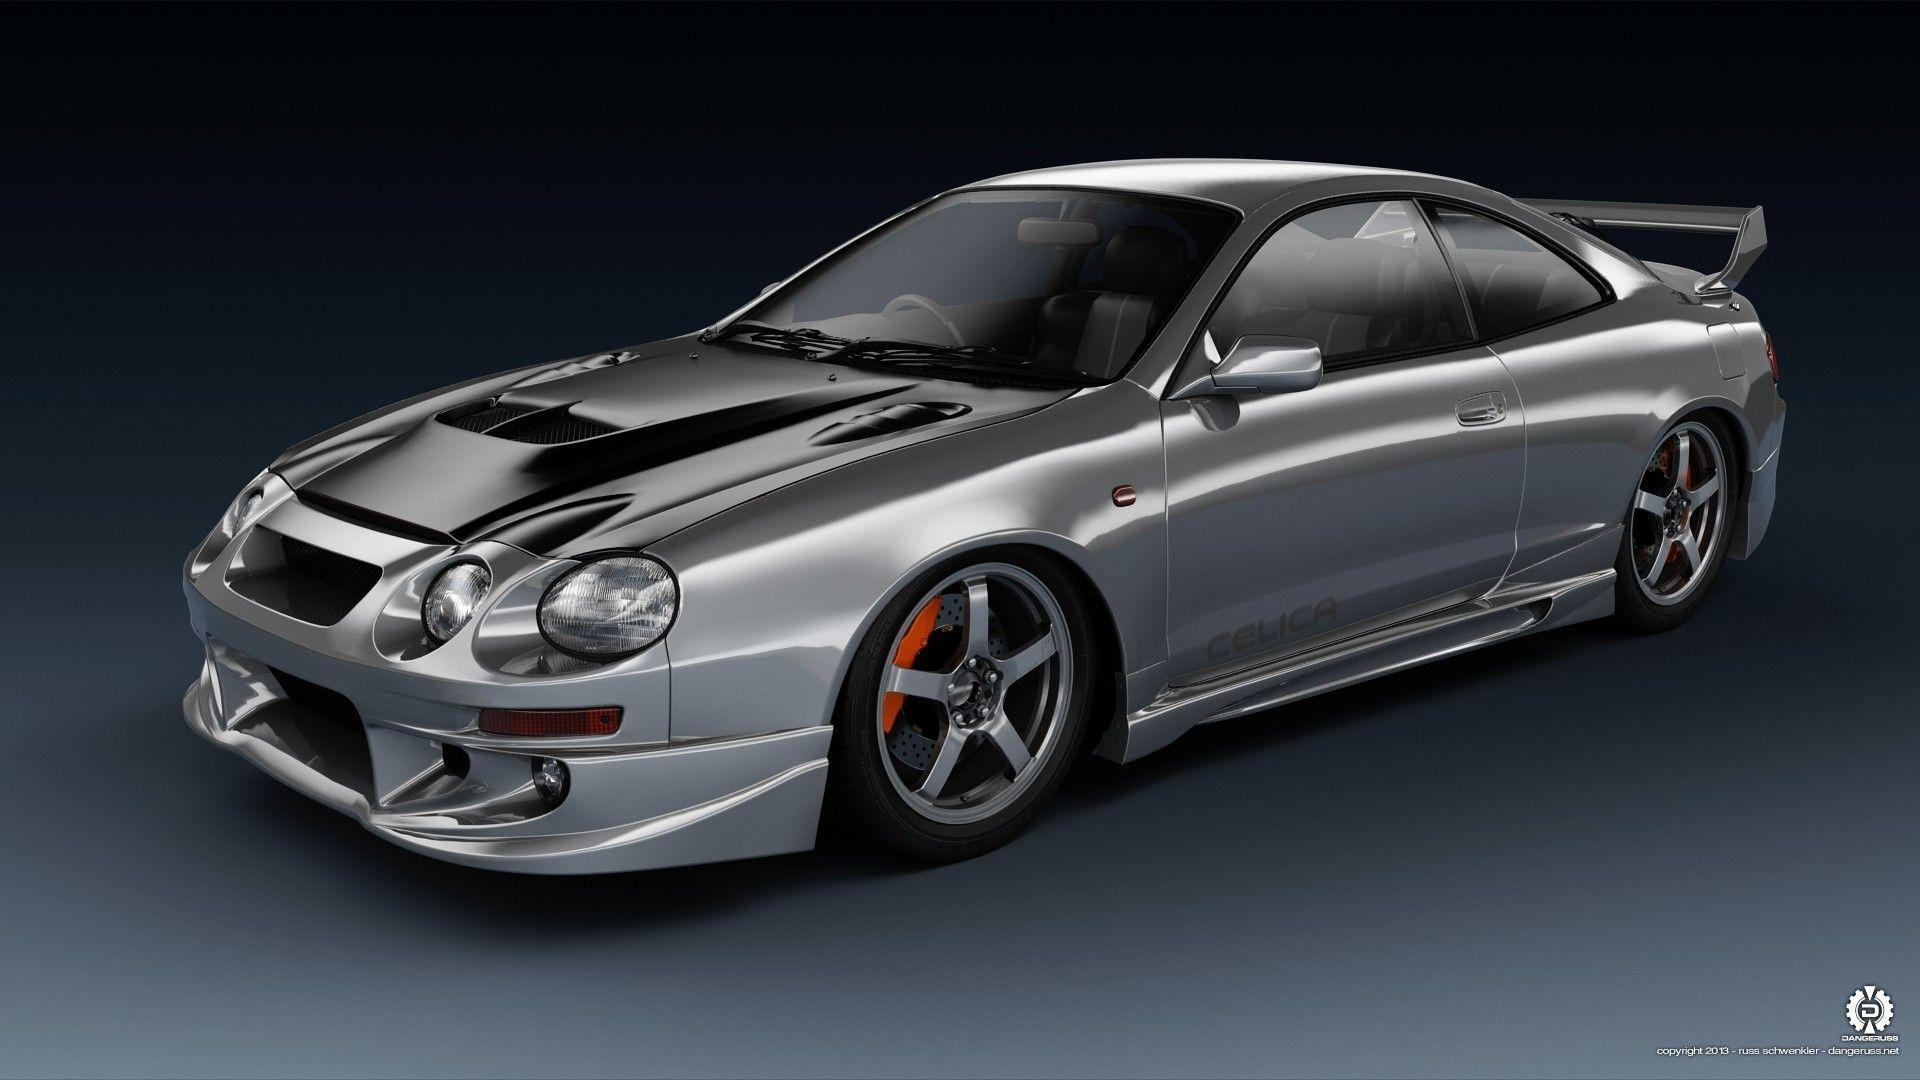 Celica gt toyota cars wallpapers